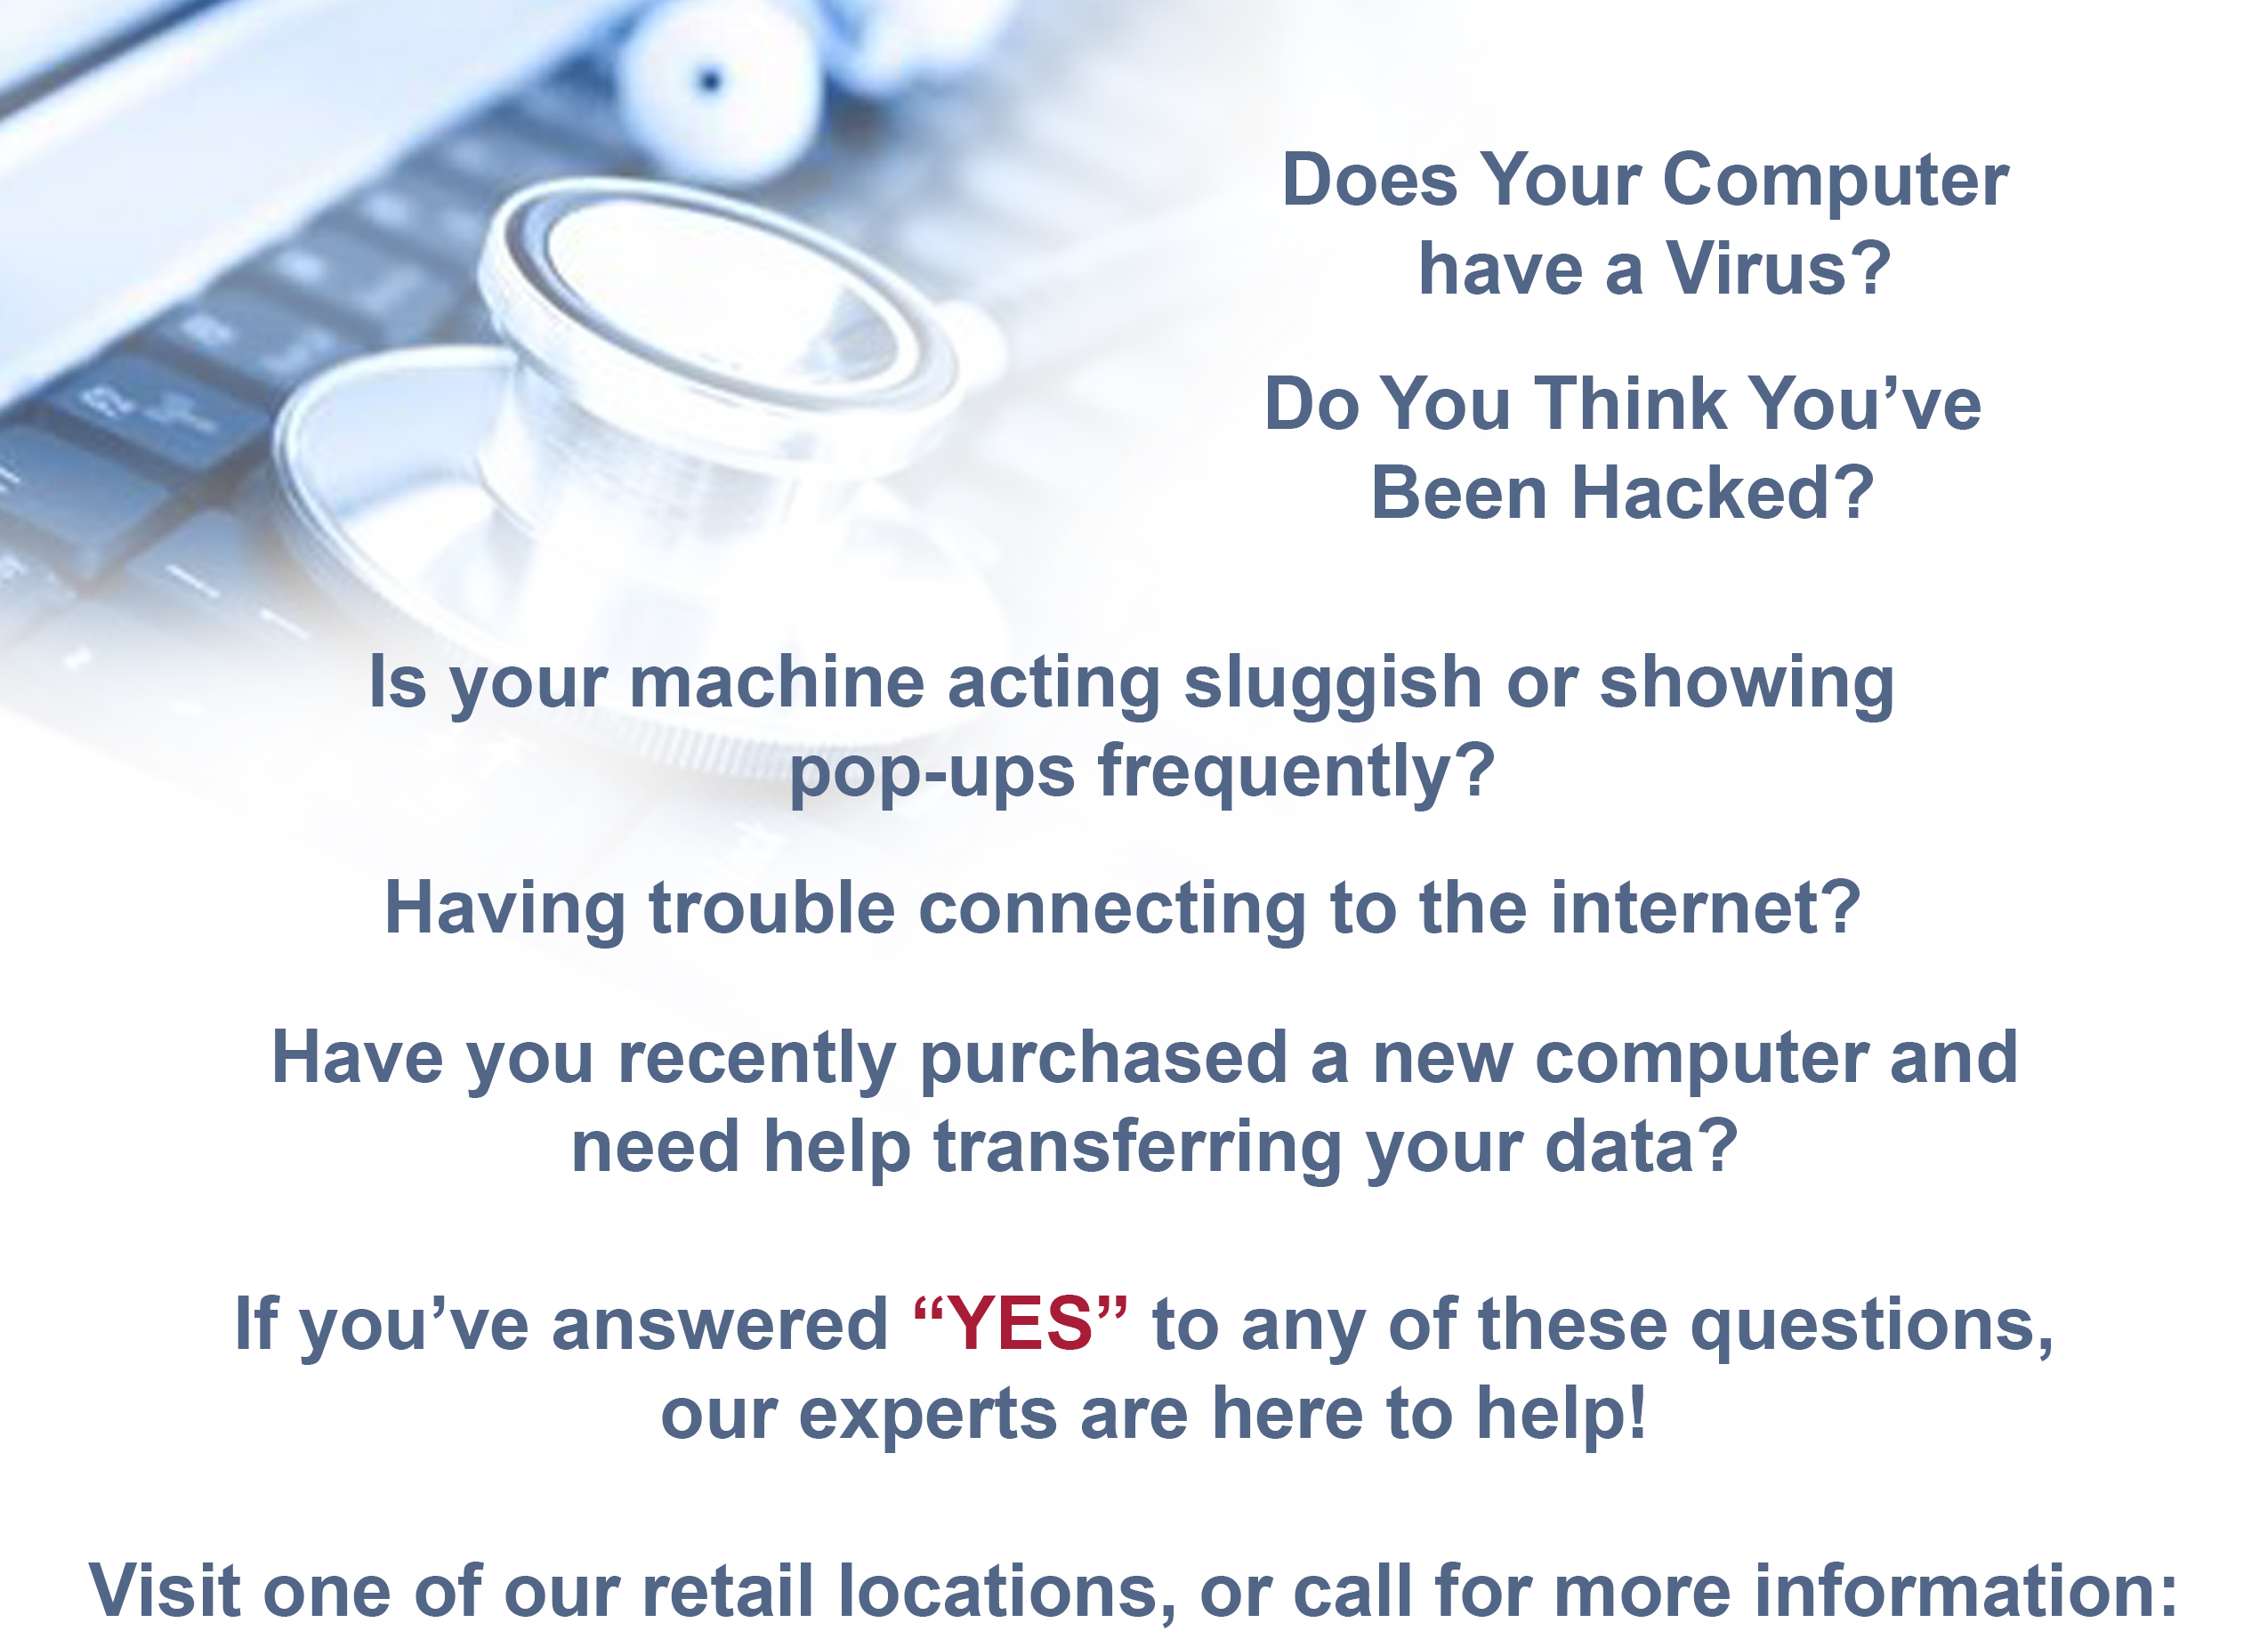 "Does Your Computer have a Virus? Do You Think You've Been Hacked? Is your machine acting sluggish or showing pop-ups frequently? Having trouble connecting to the internet? Have you recently purchased a new computer and need help transferring your data? If you've answered ""YES"" to any of these questions, our experts are here to help! Visit one of our retail locations, call, or email for more information:"